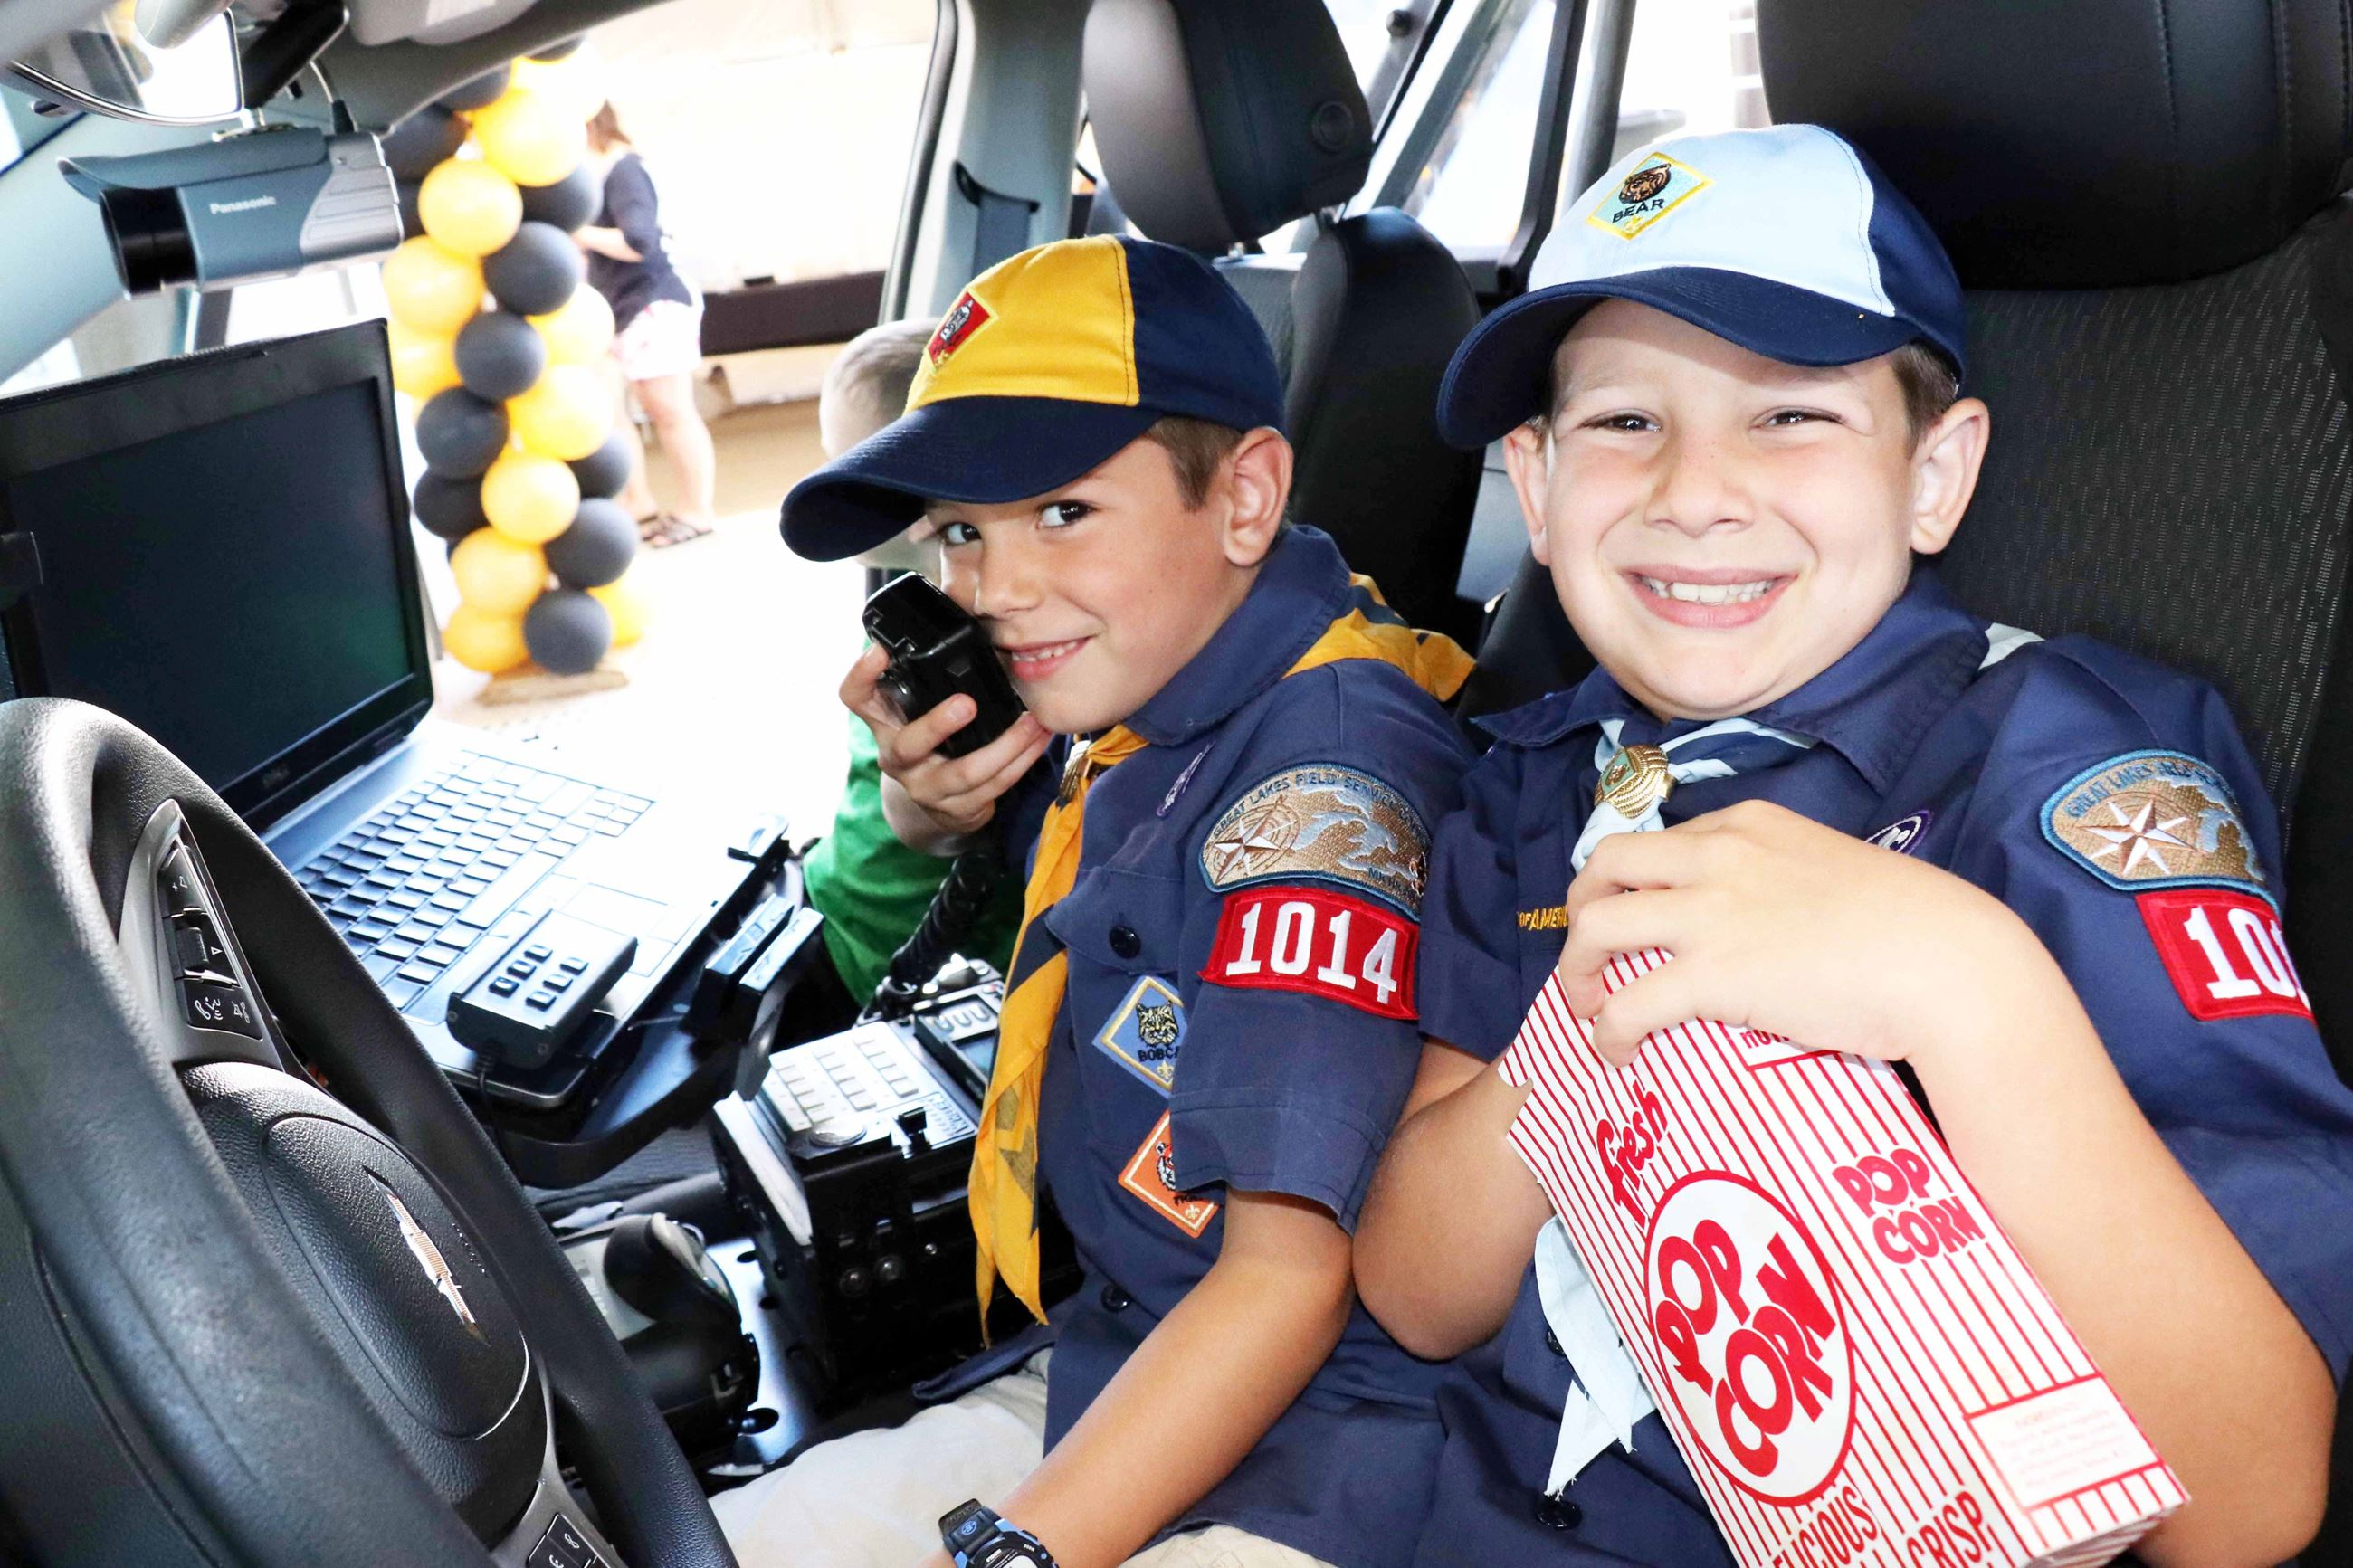 Kids in Patrol Car